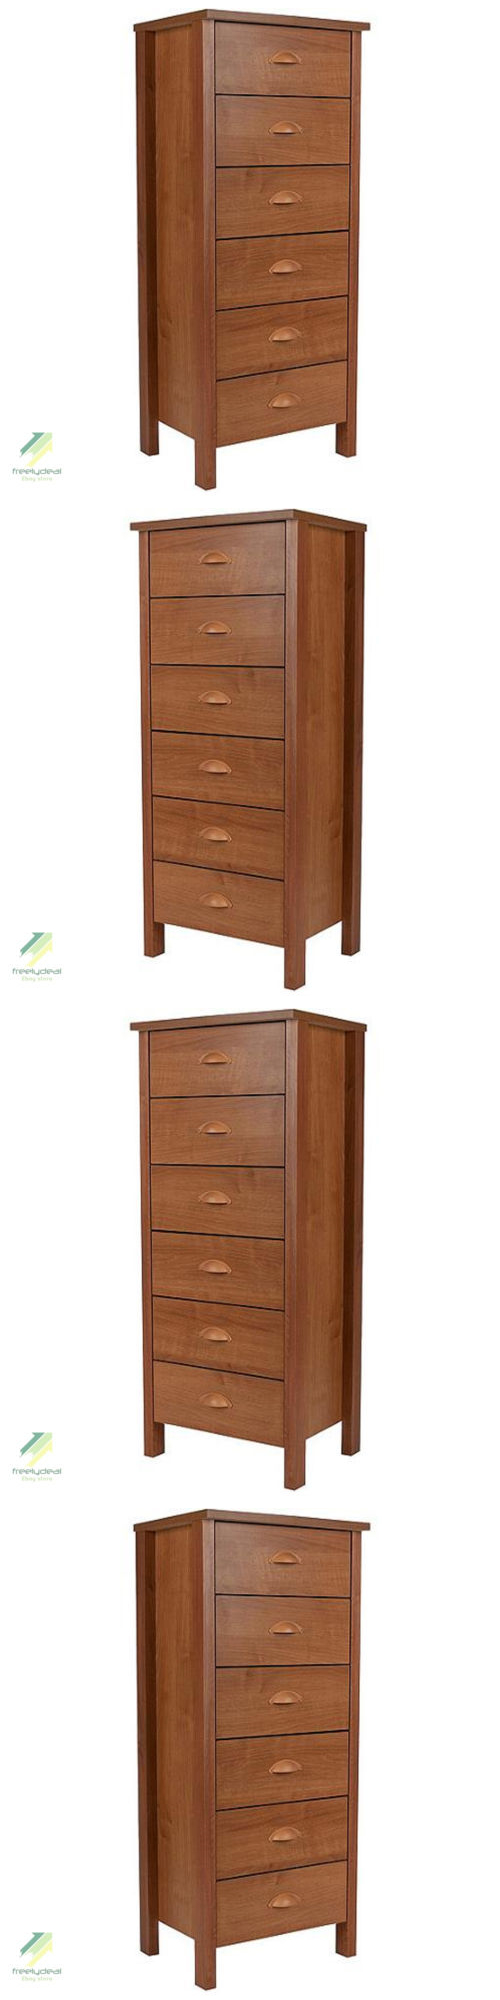 Dressers and chests of drawers lingerie clothes storage